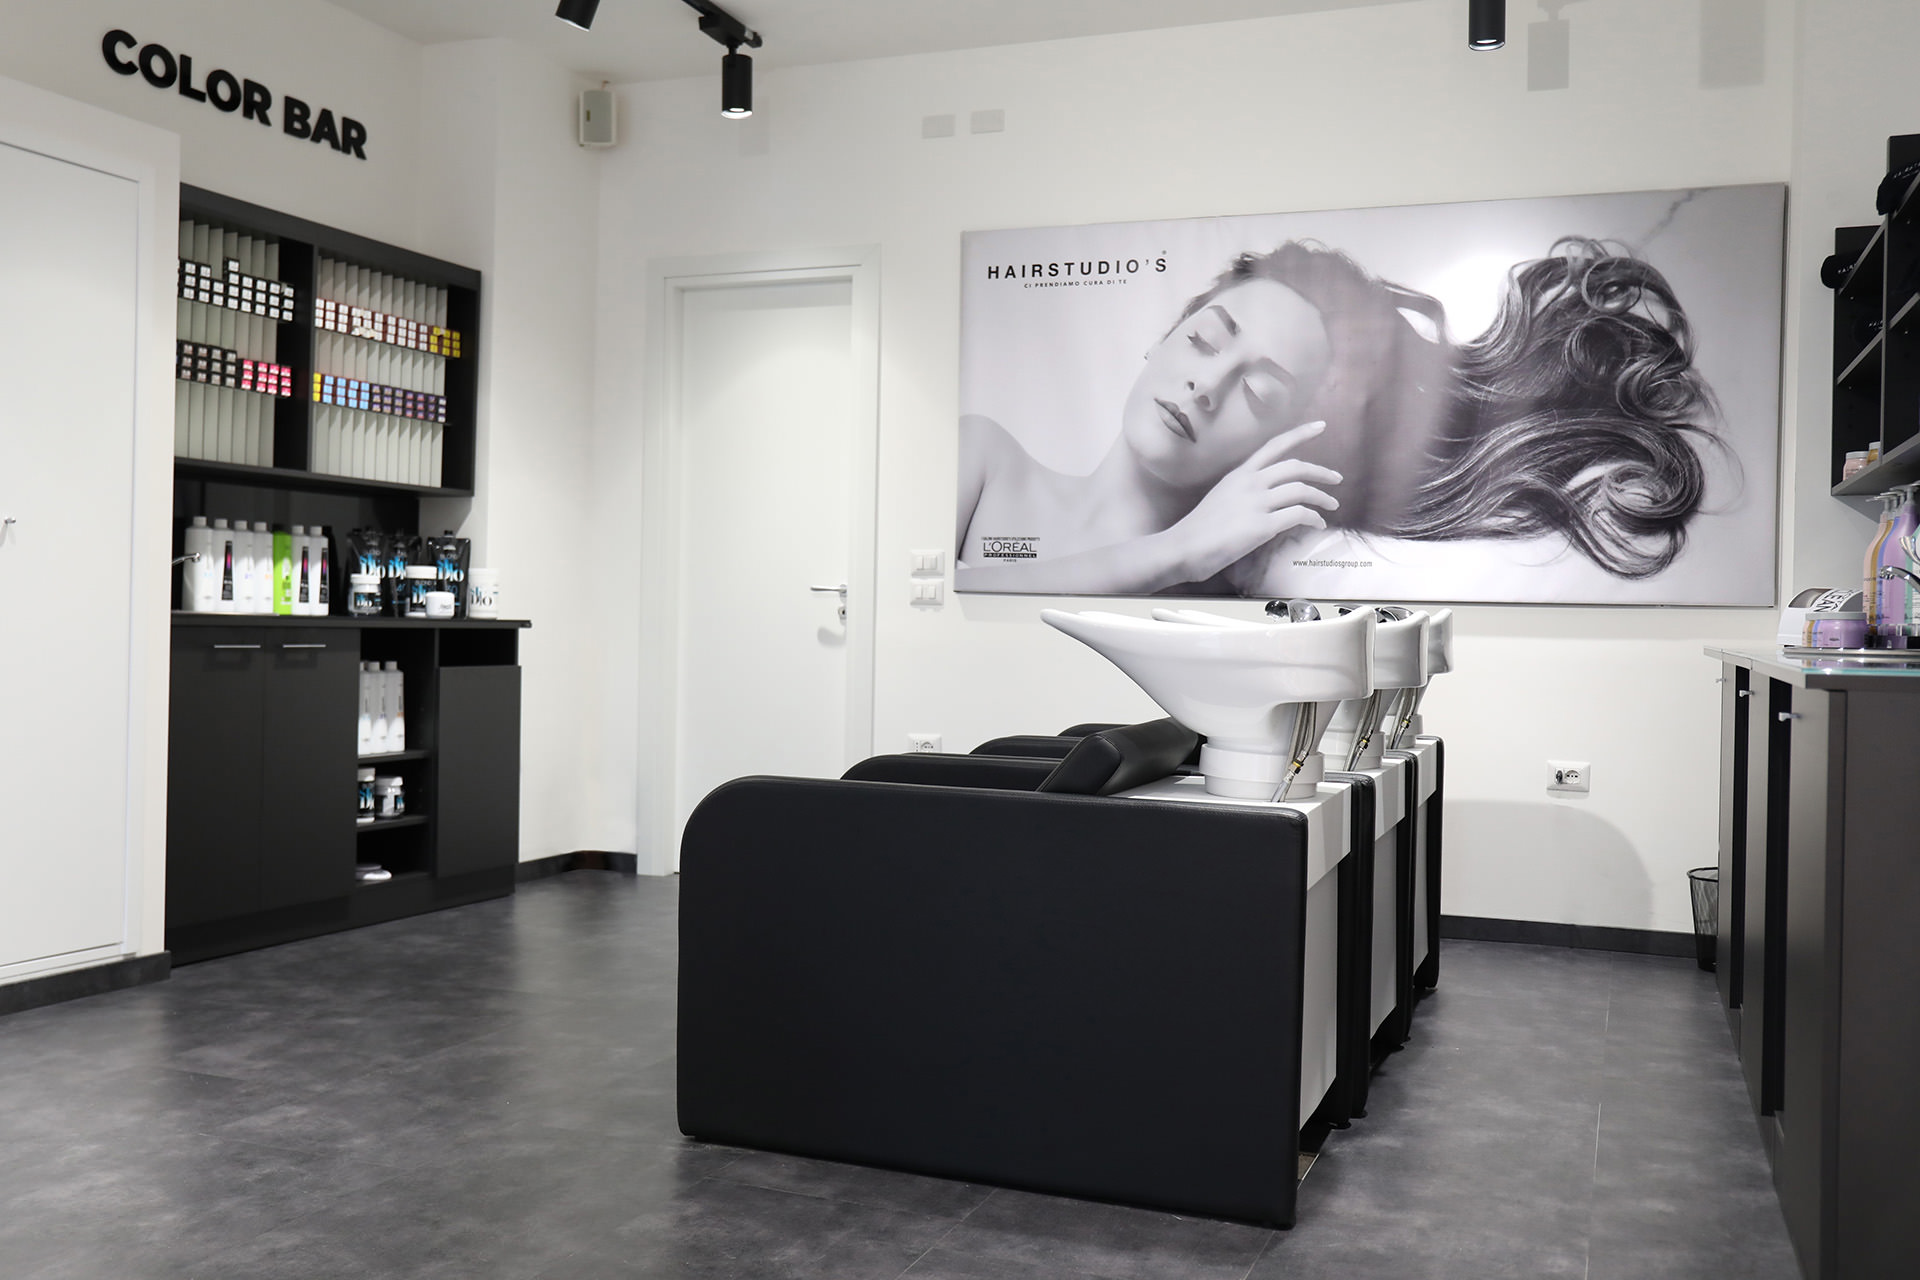 hairstudios-salon-concept-6